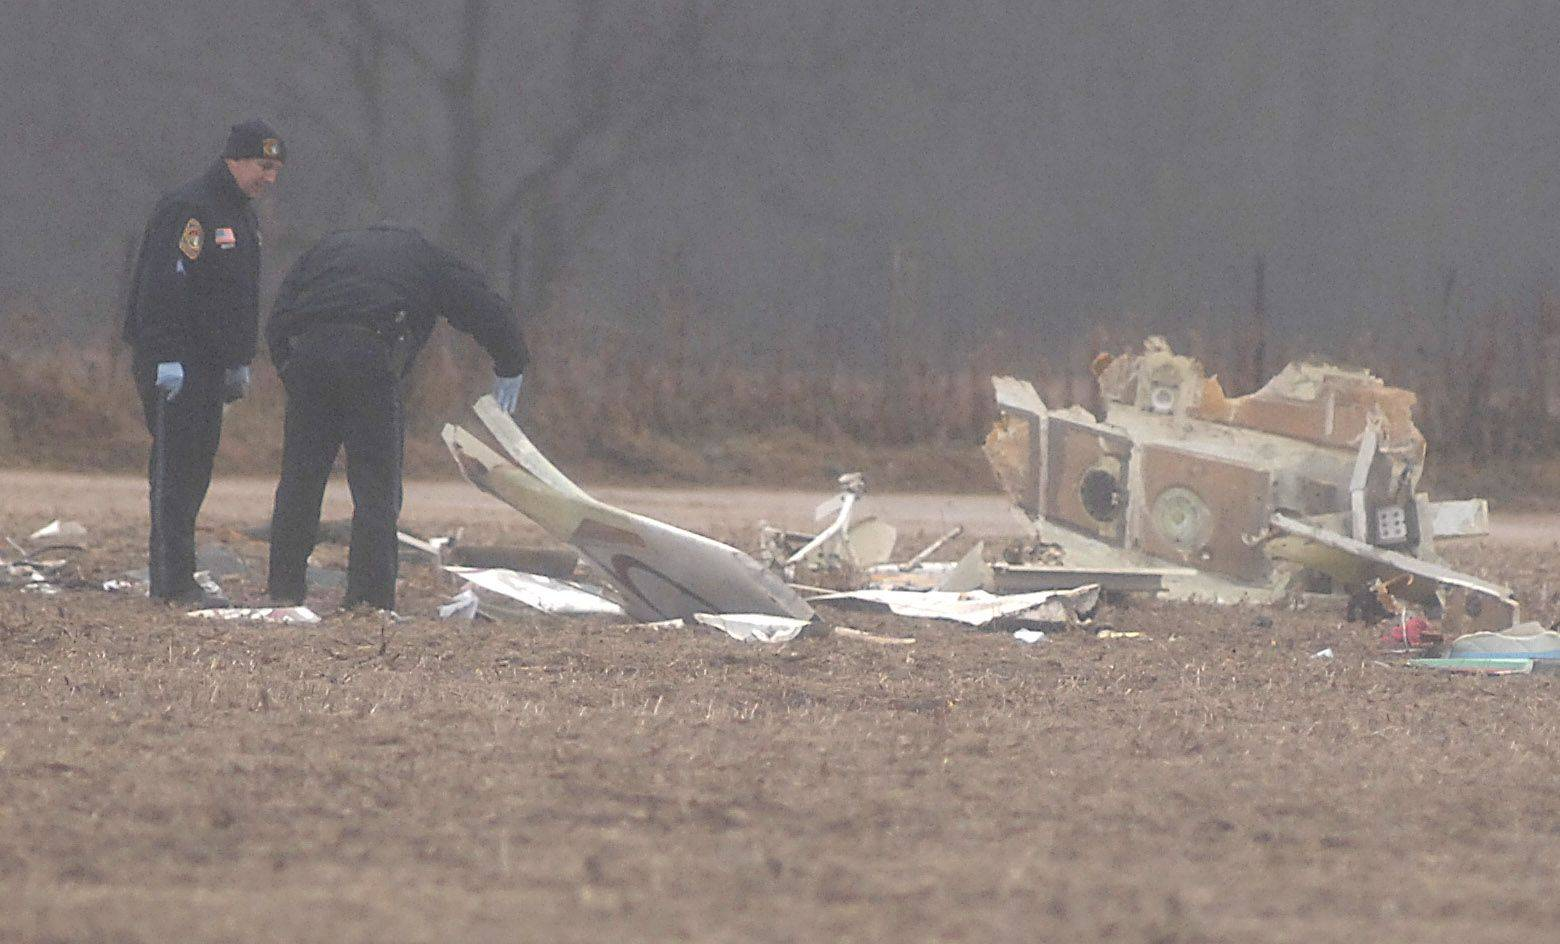 This is the scene of the fatal plane crash Saturday near Crystal Lake.